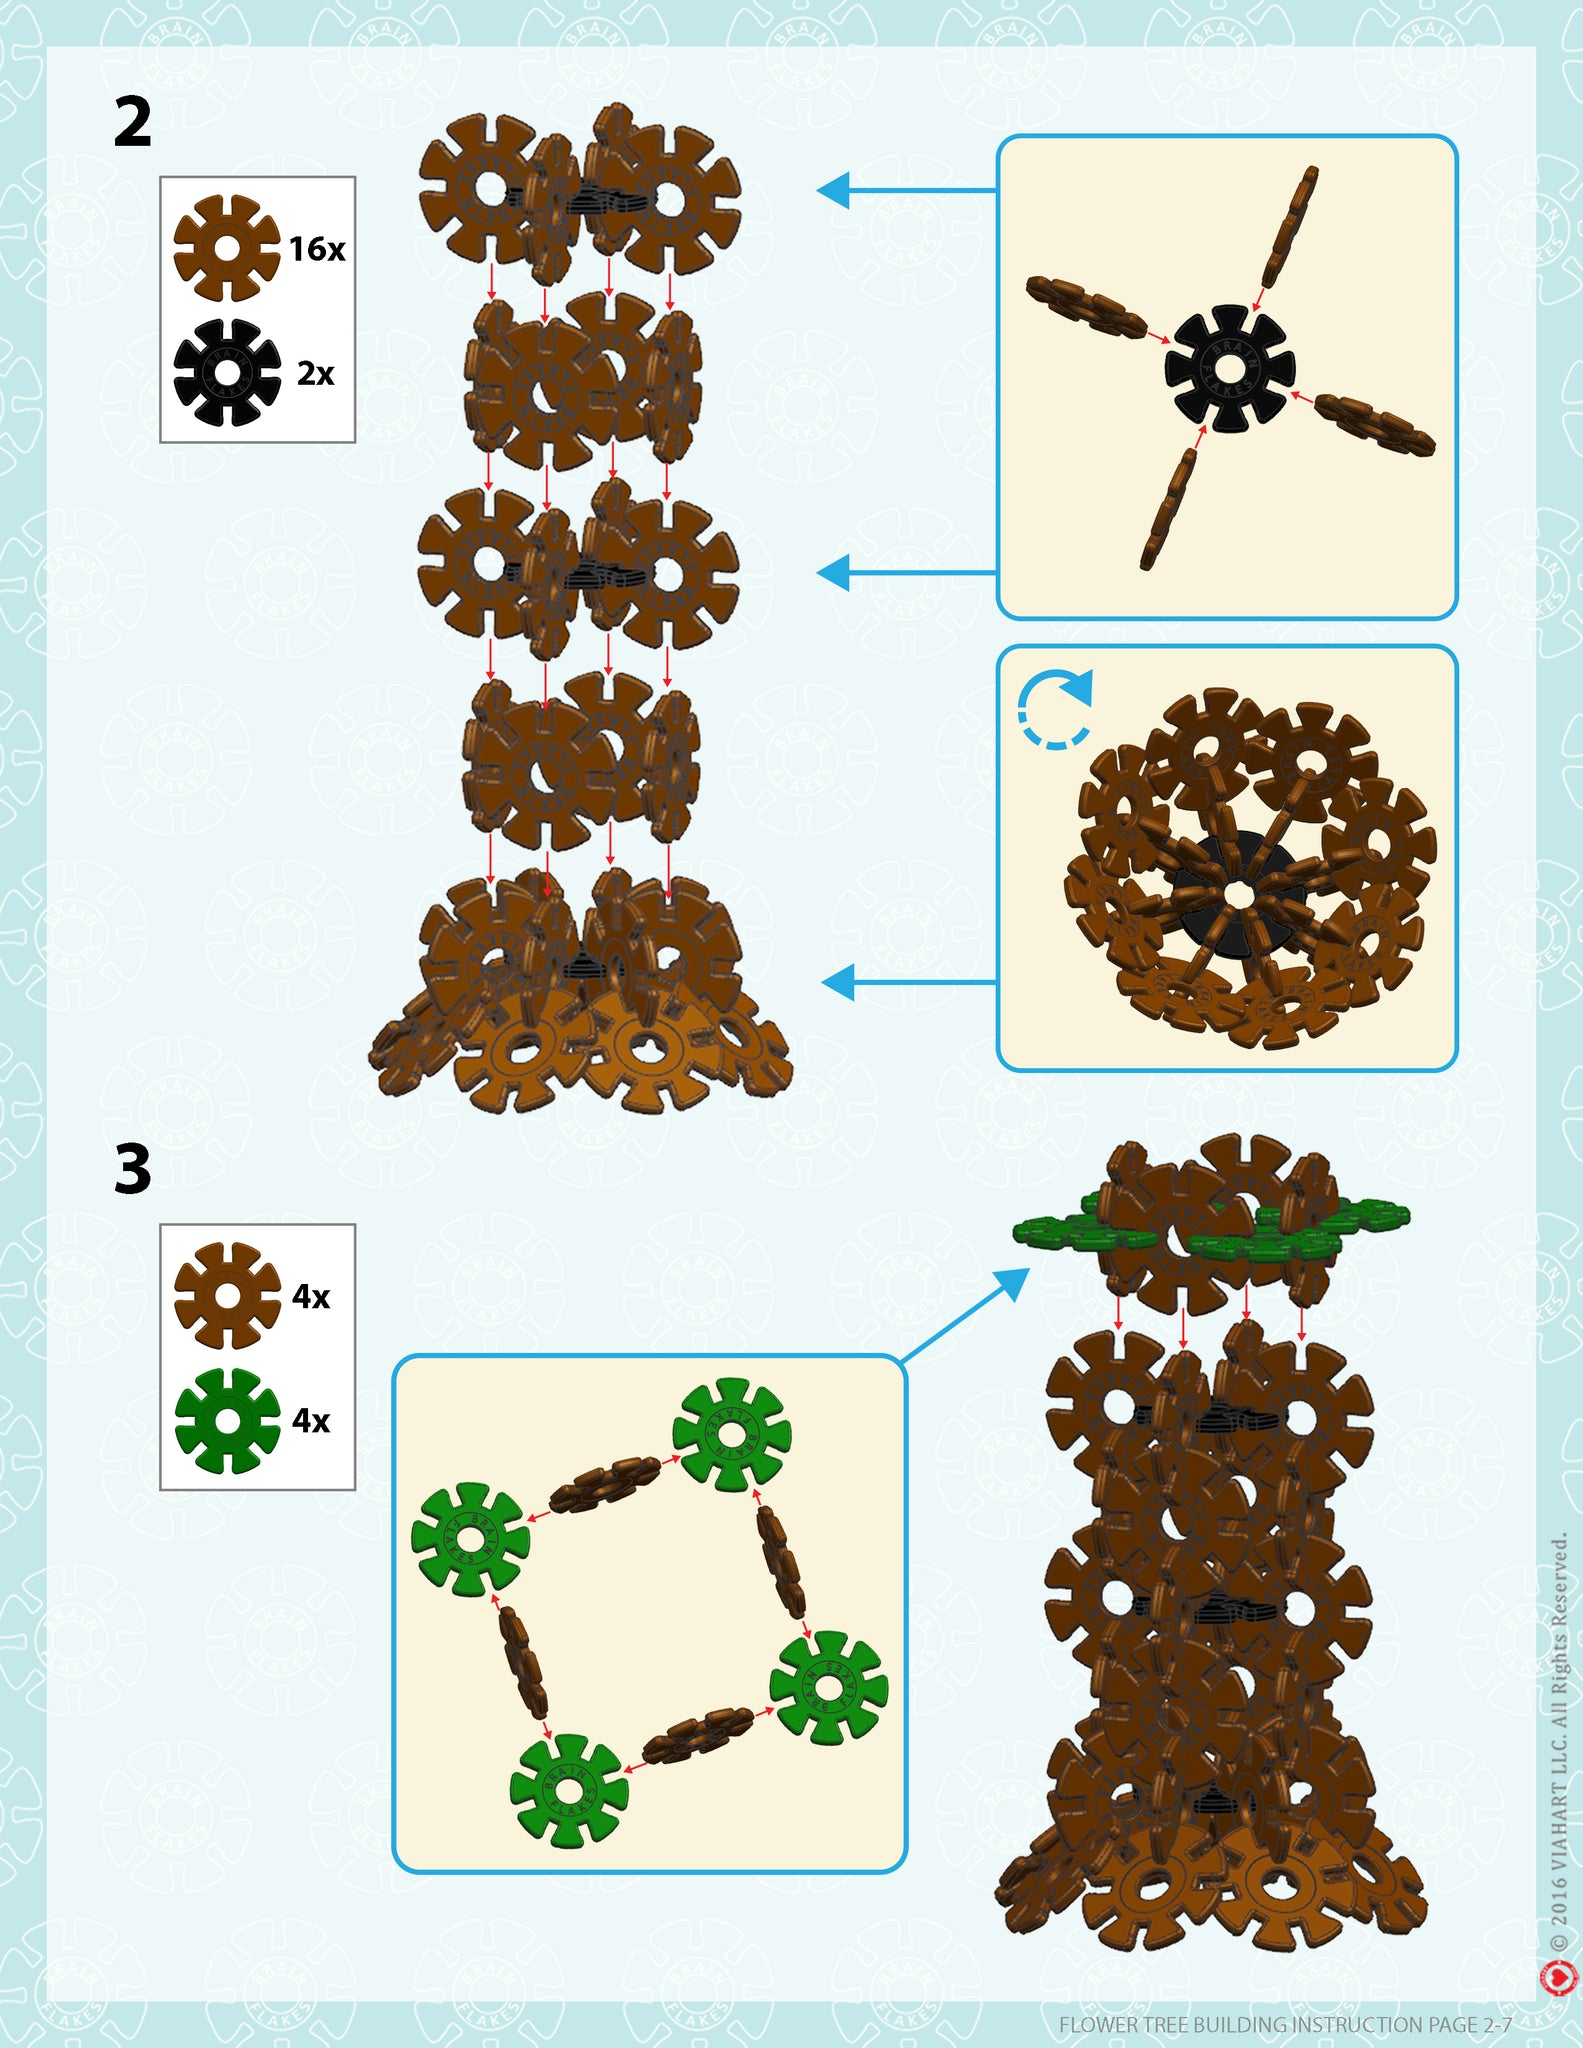 Brain Flakes Tree building instructions 2